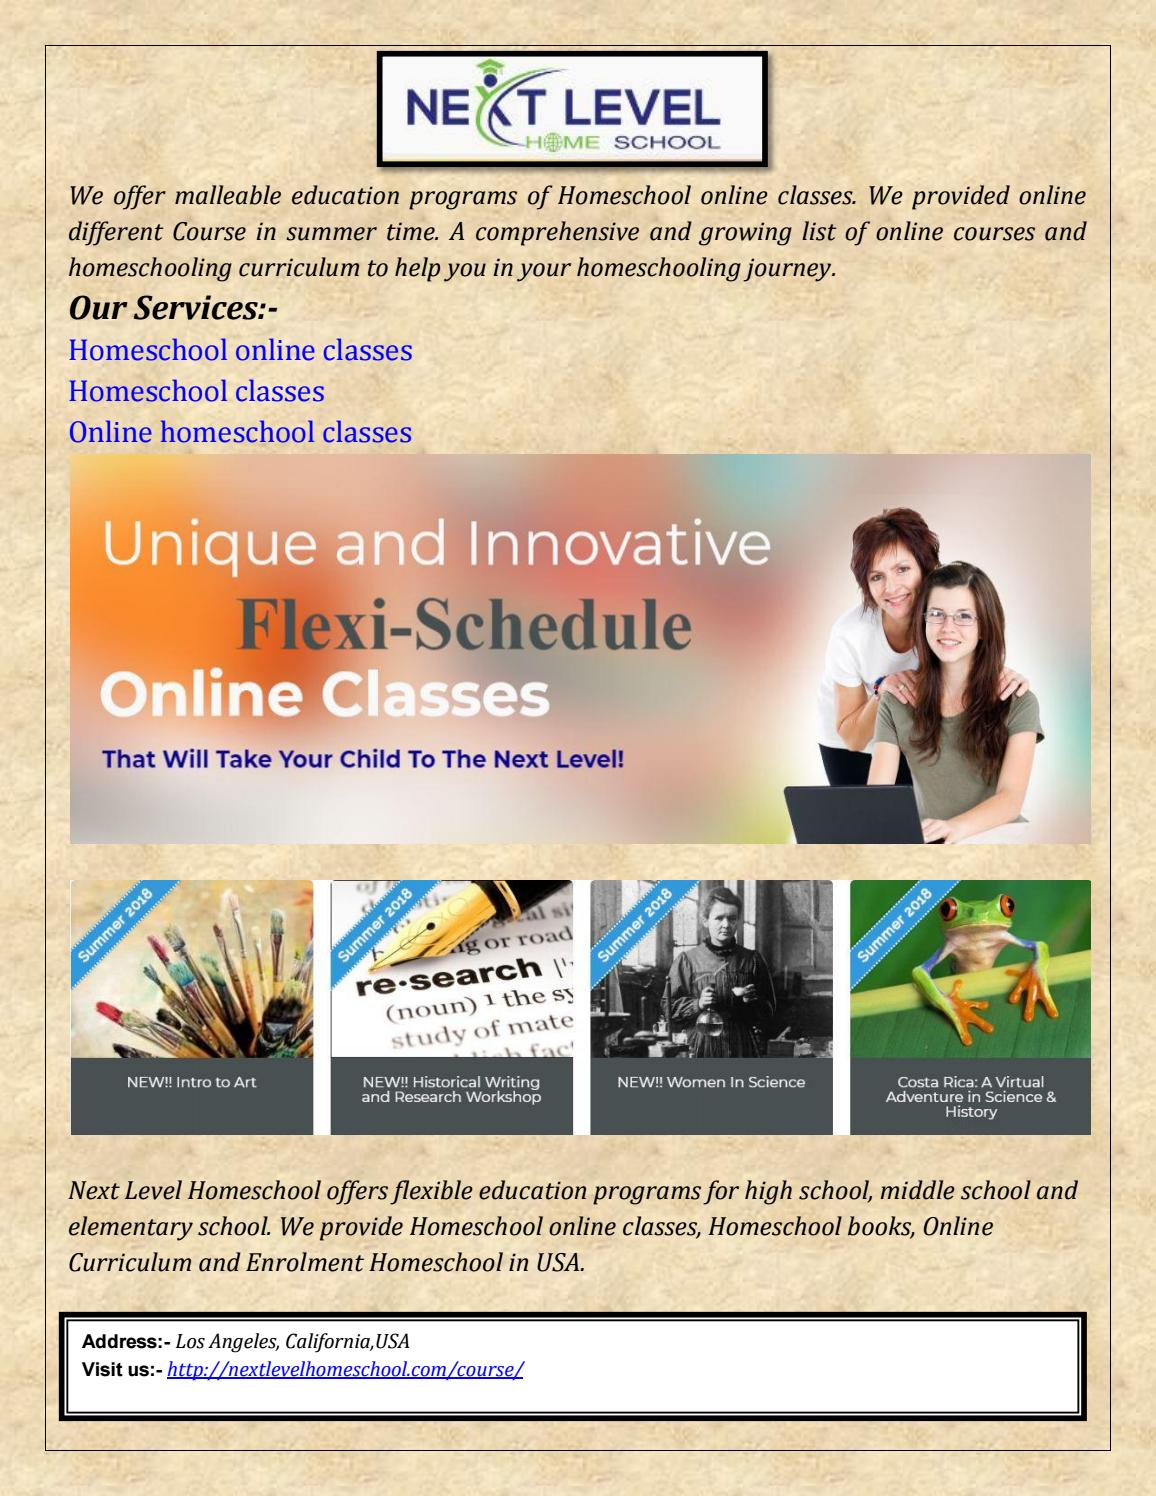 Course homeschool online classes science and math homeschool